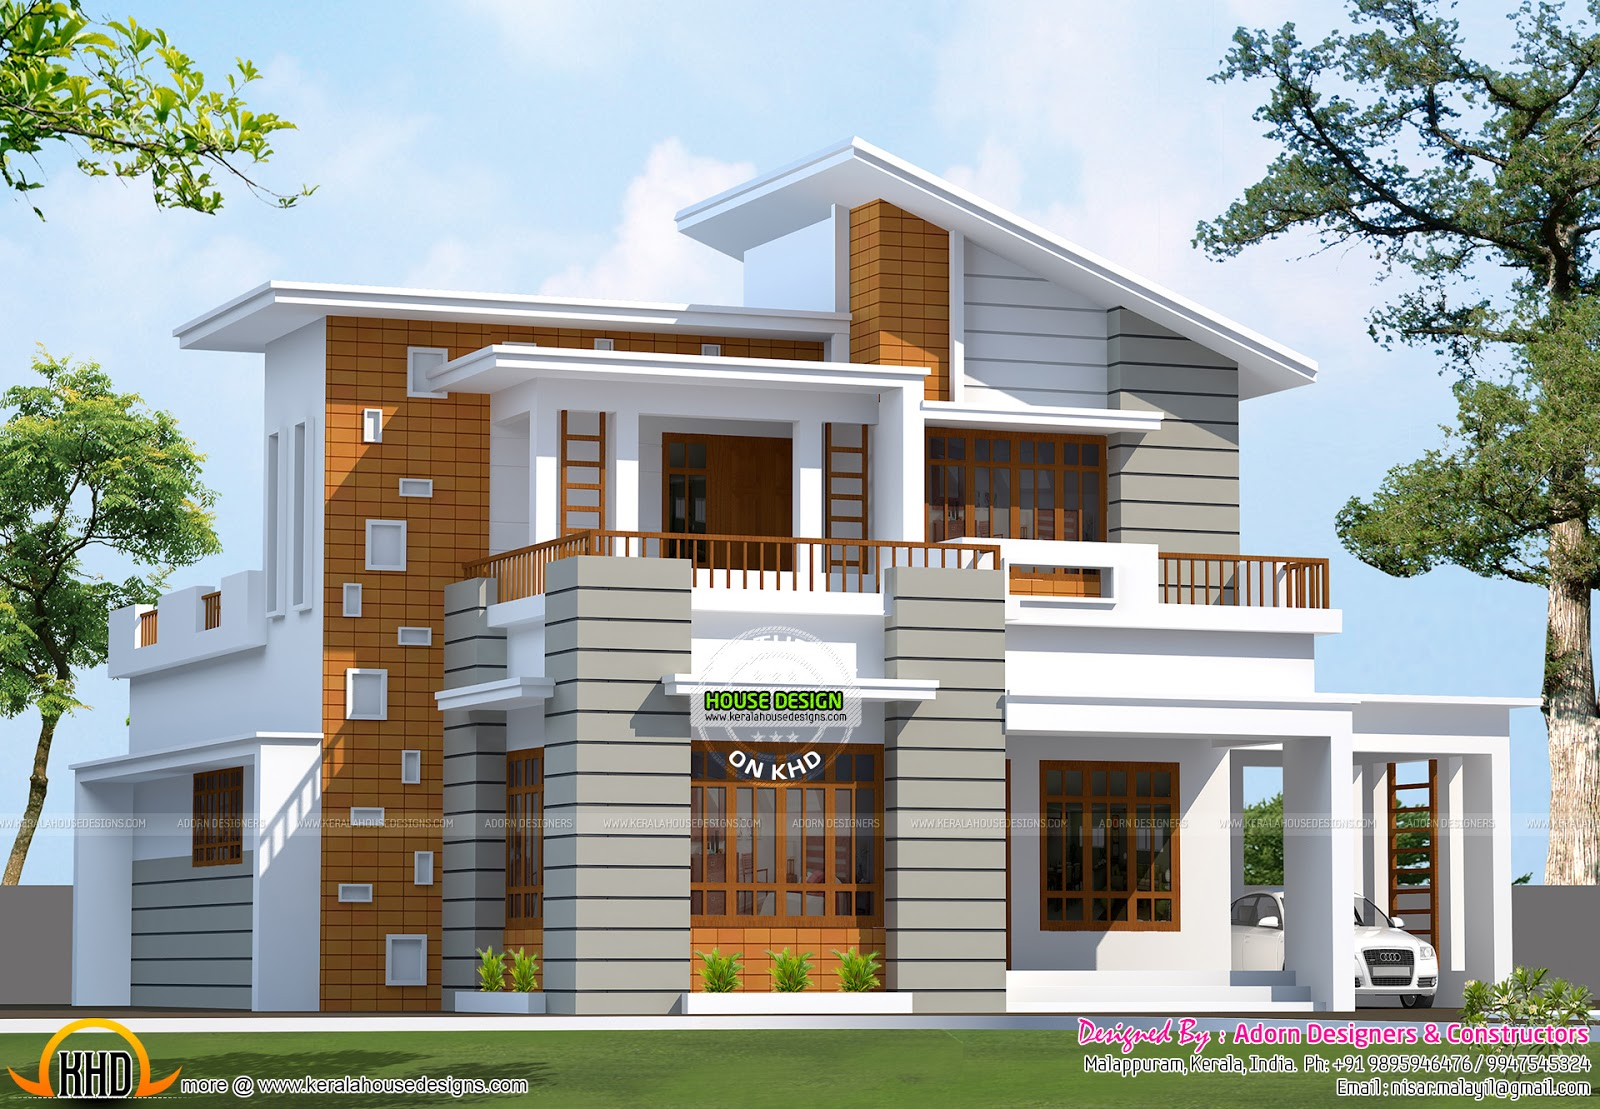 Indian house outlook design modern house for In home design